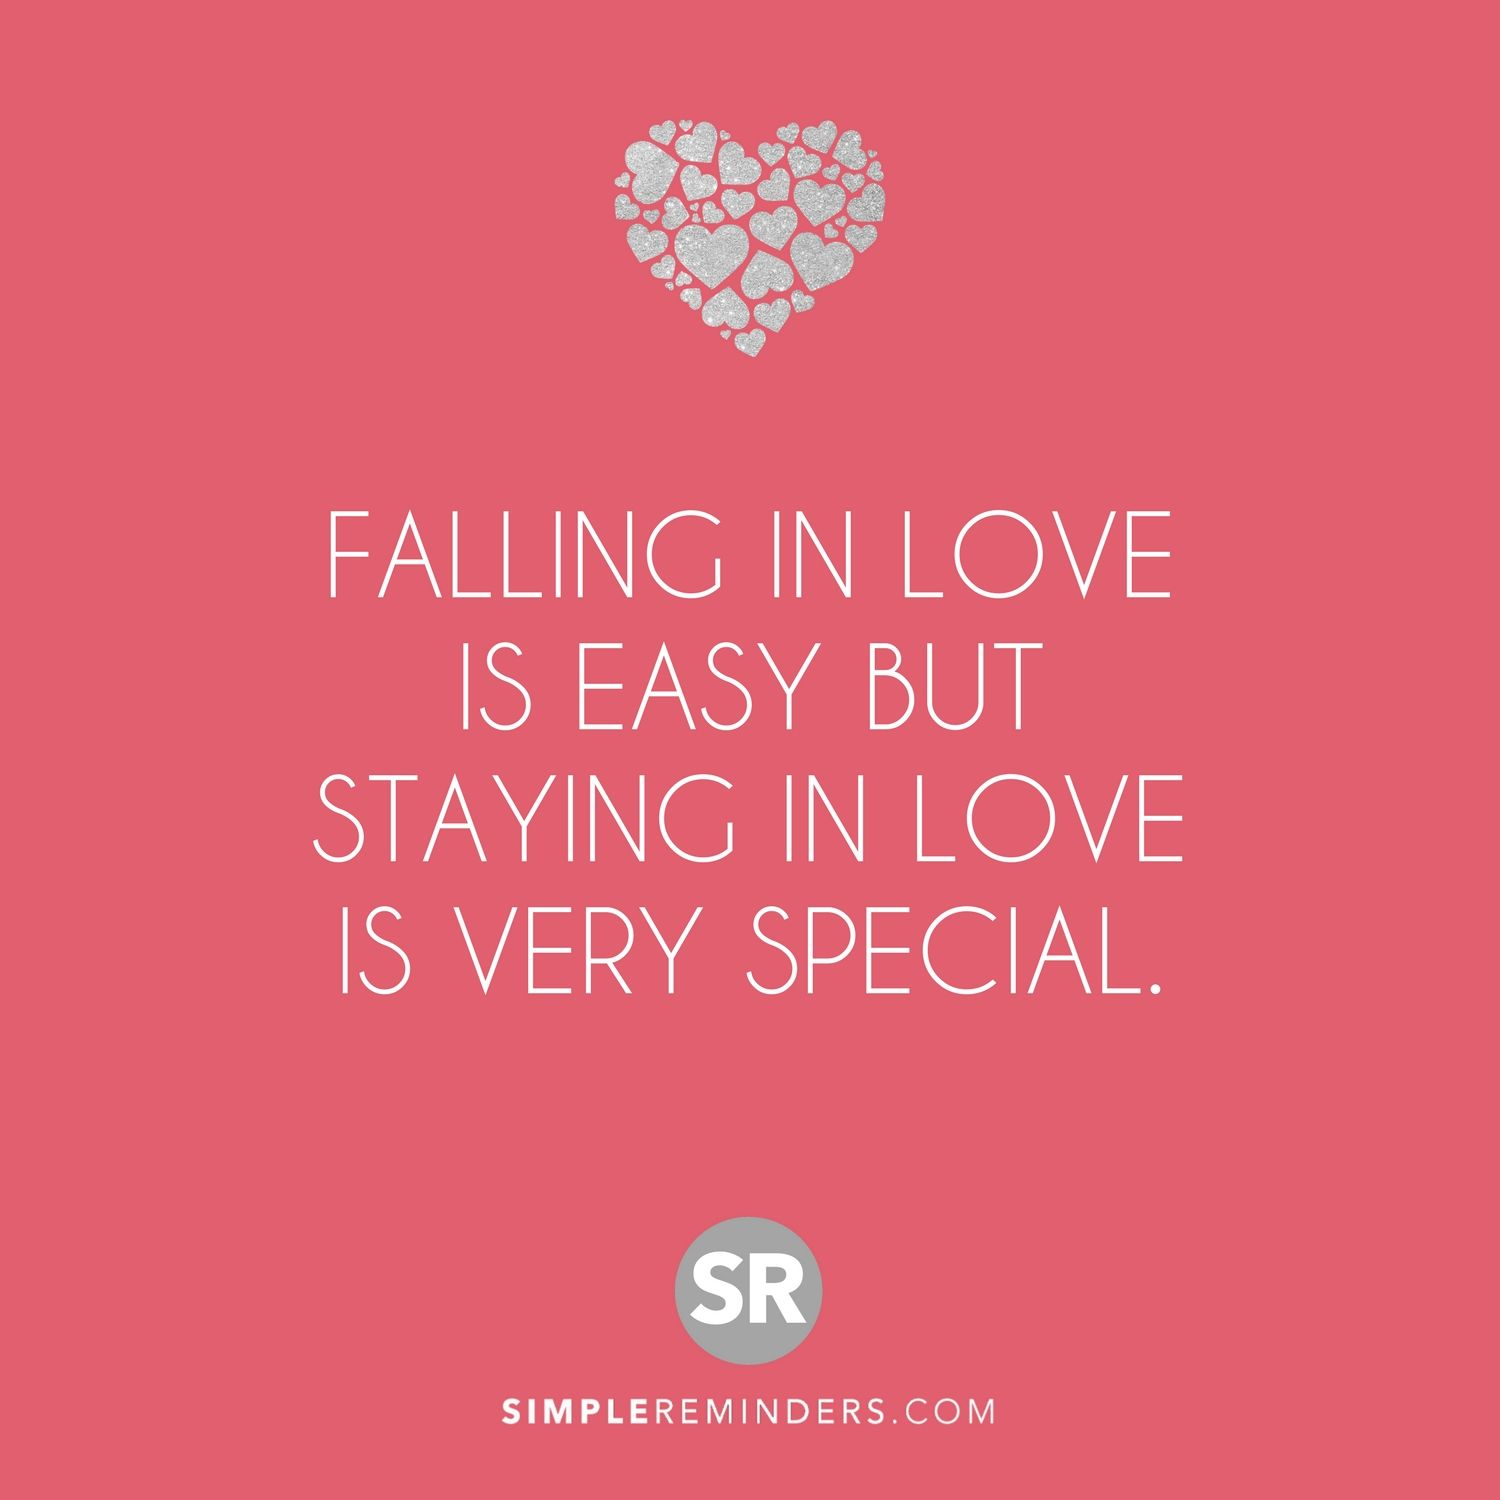 Falling In Love Is Easy But Staying In Love Is Very